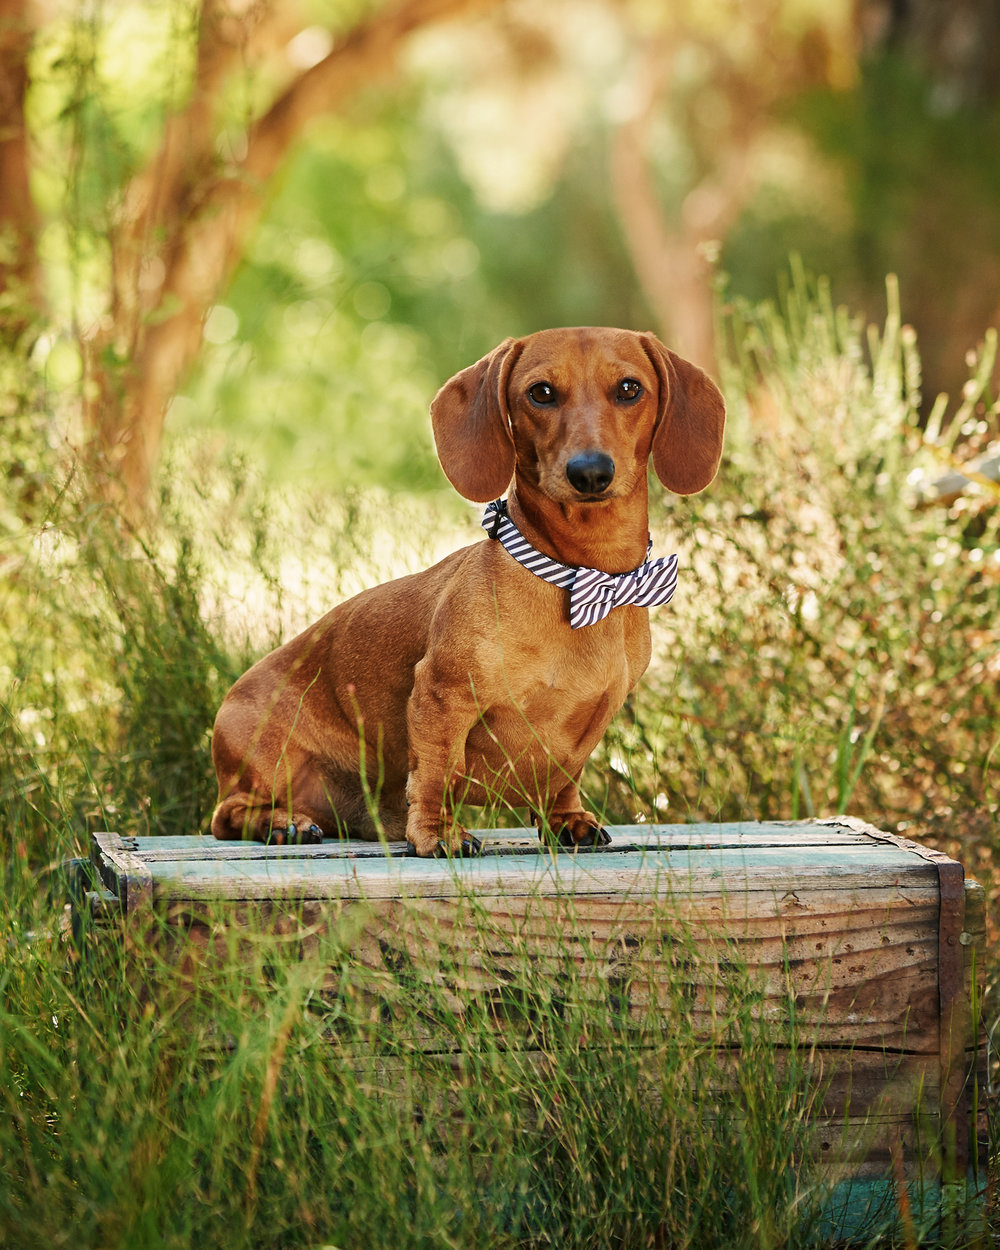 deutsch_hound_pet_dog_four_paws_portrait